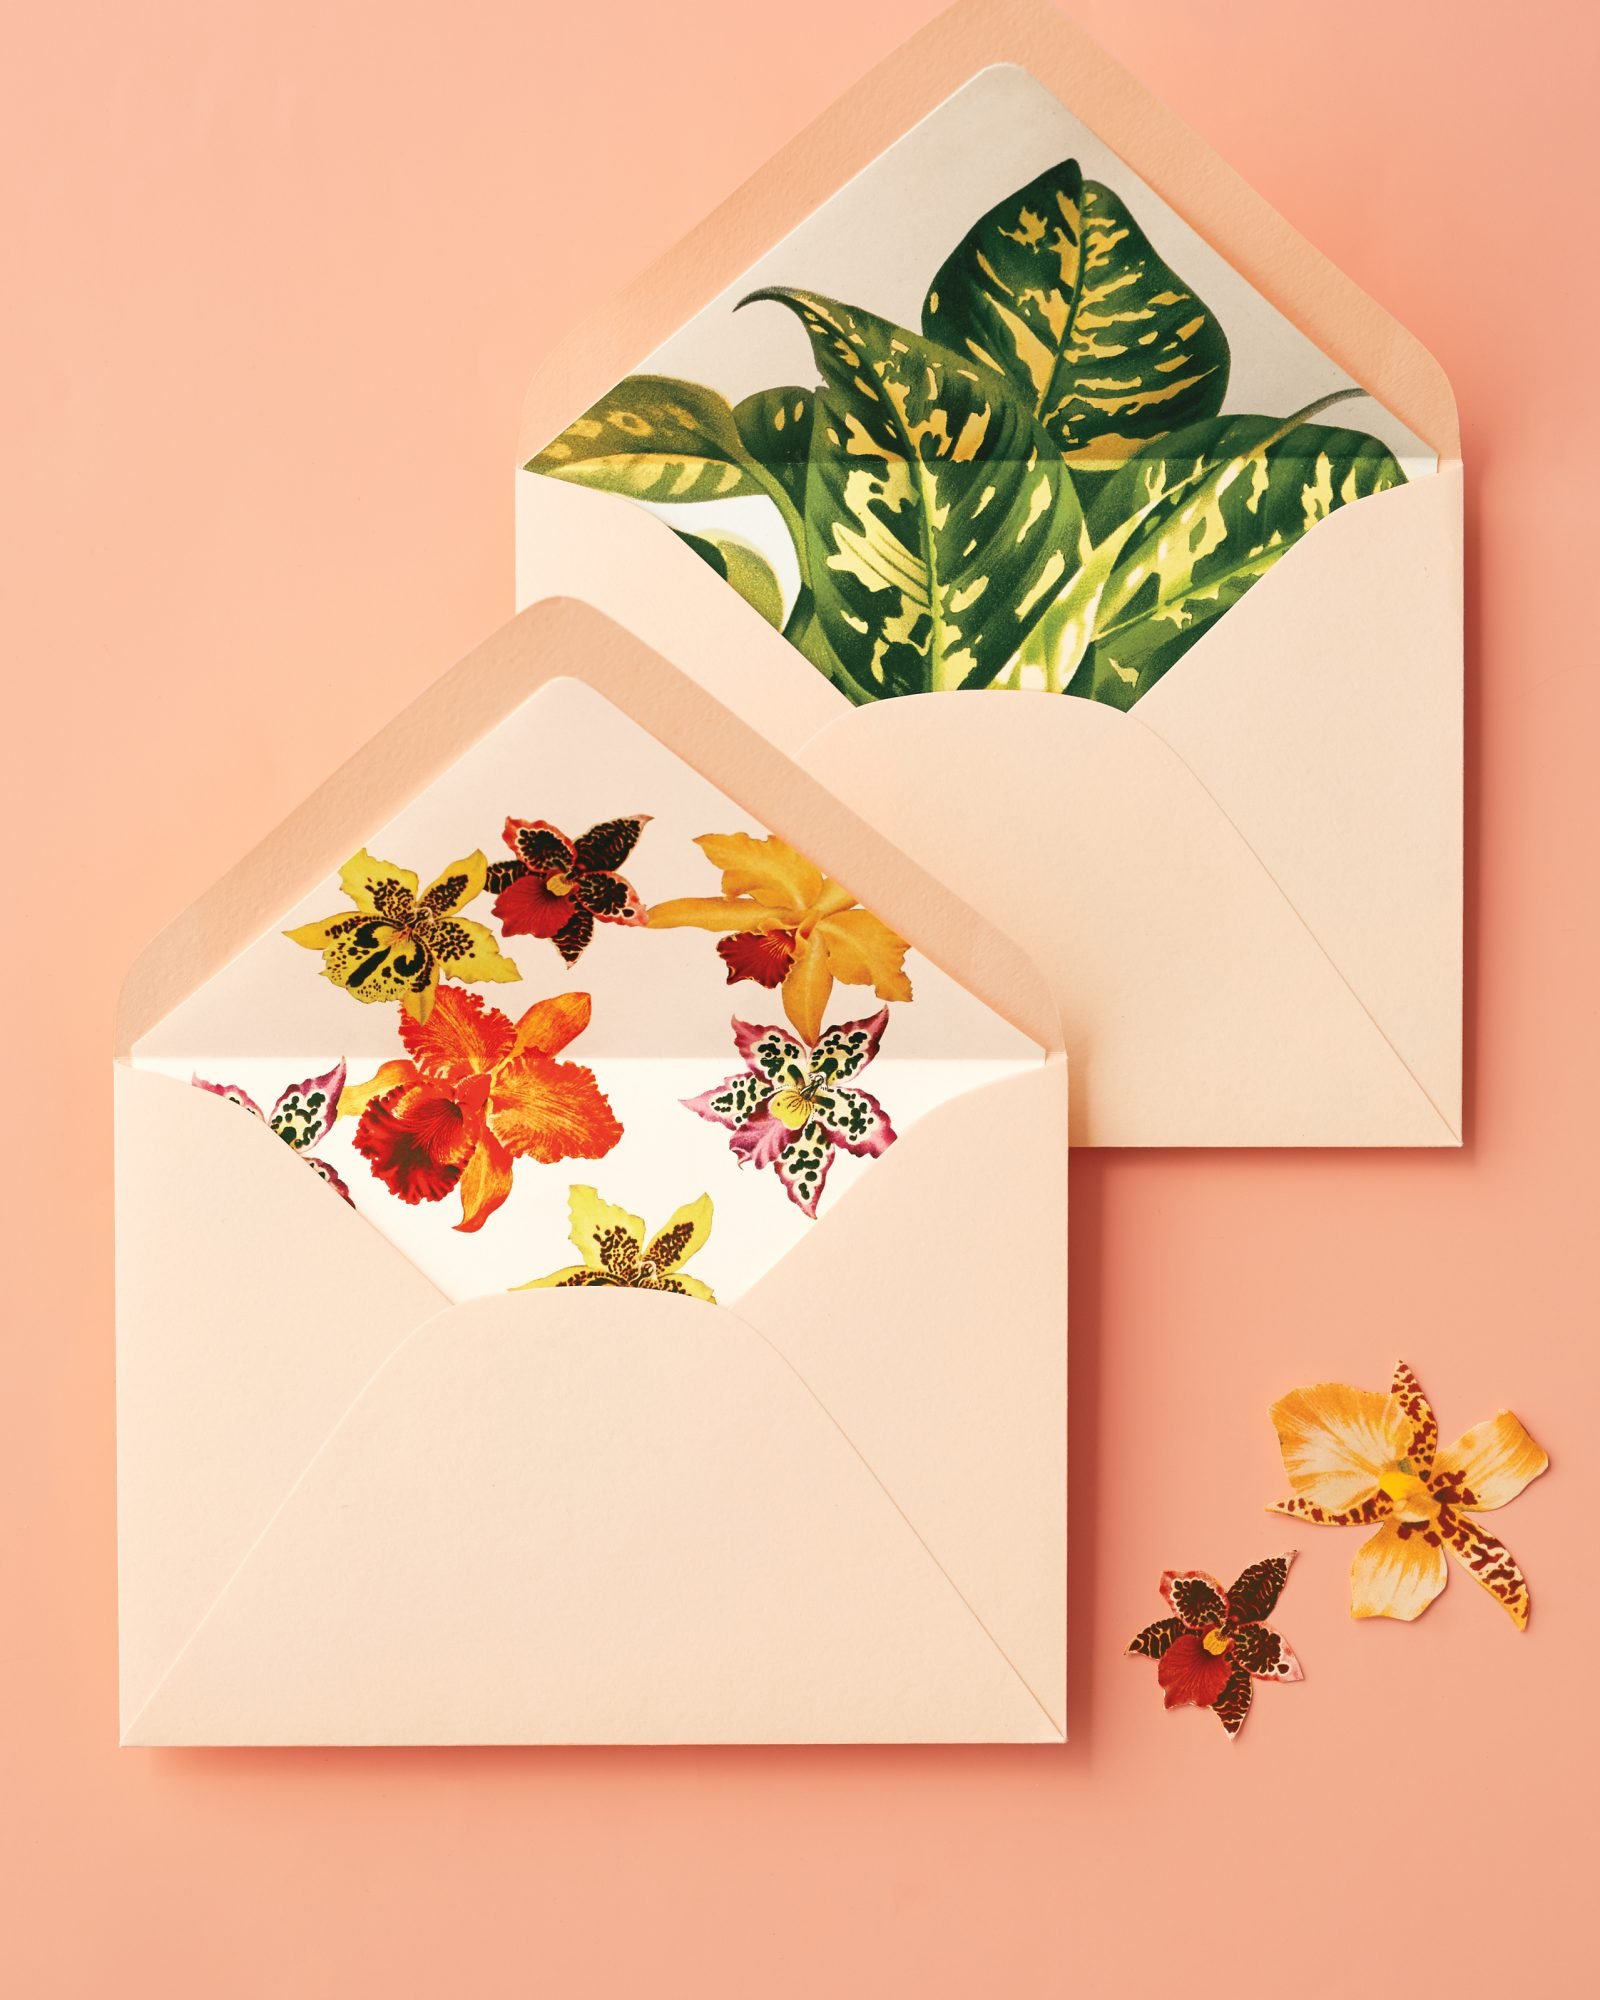 secret-source-paper-envelopes-206-d111826.jpg